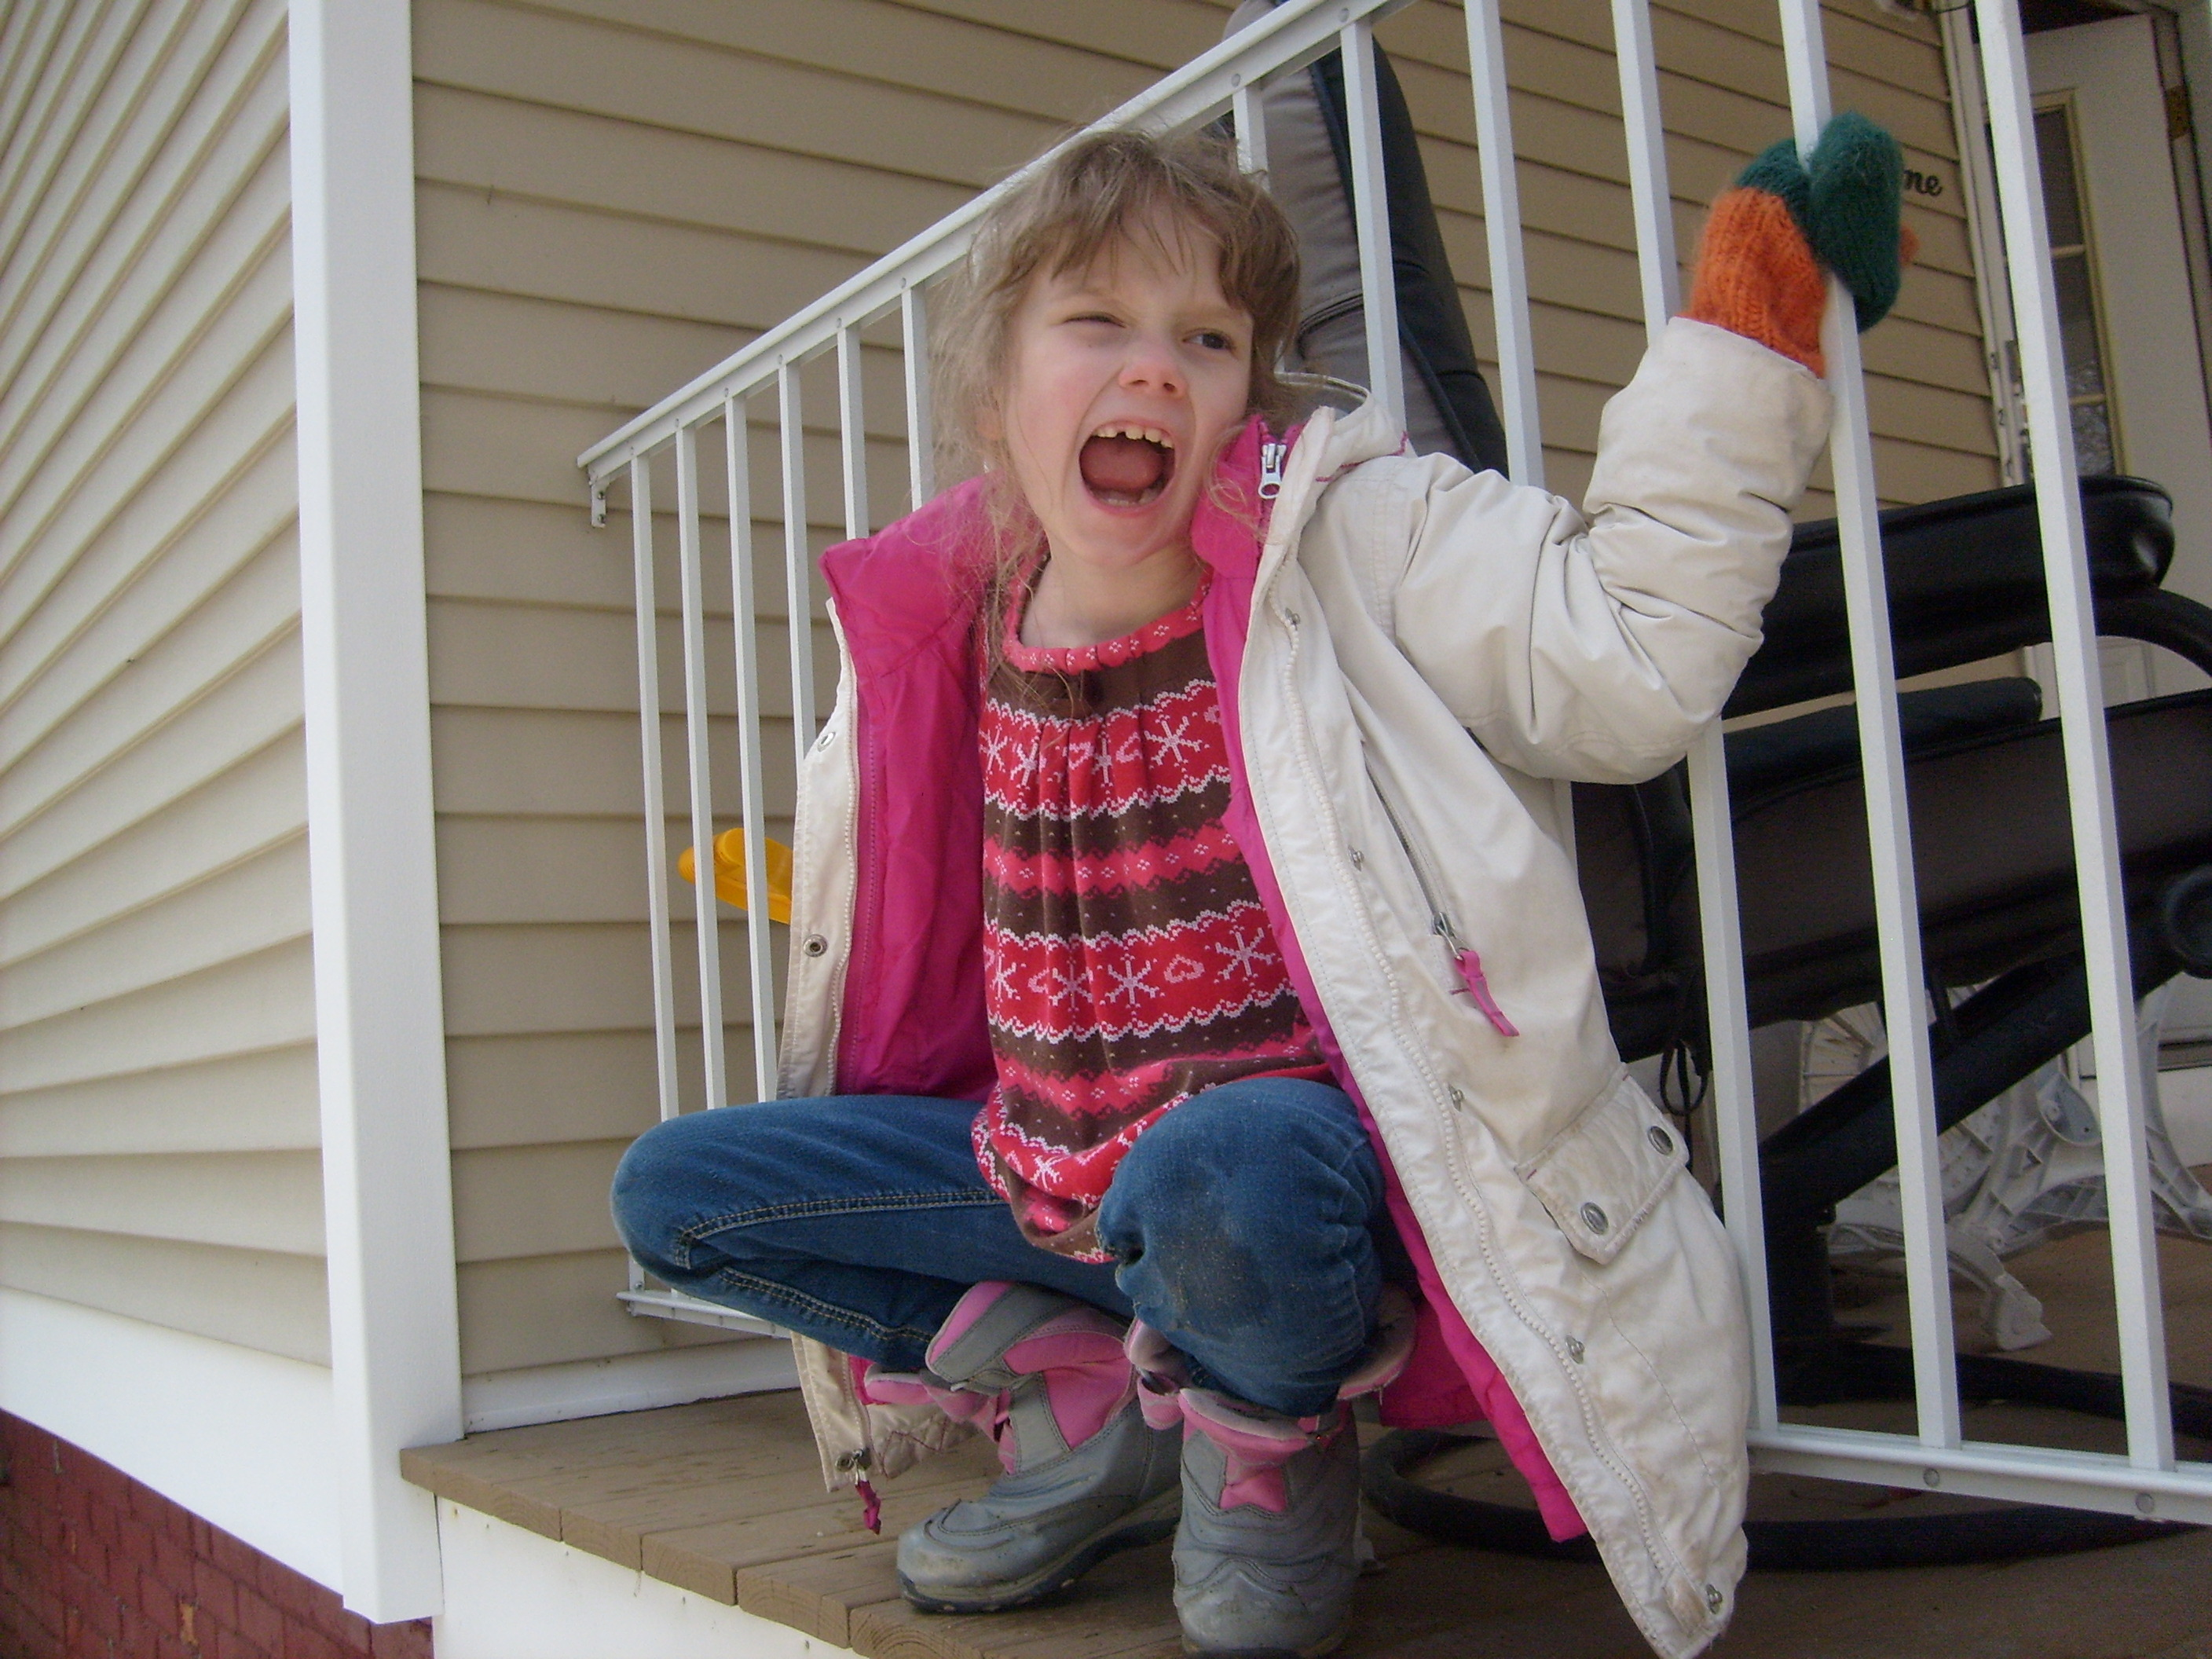 K hanging off the front porch railing pretending to be a gargoyle